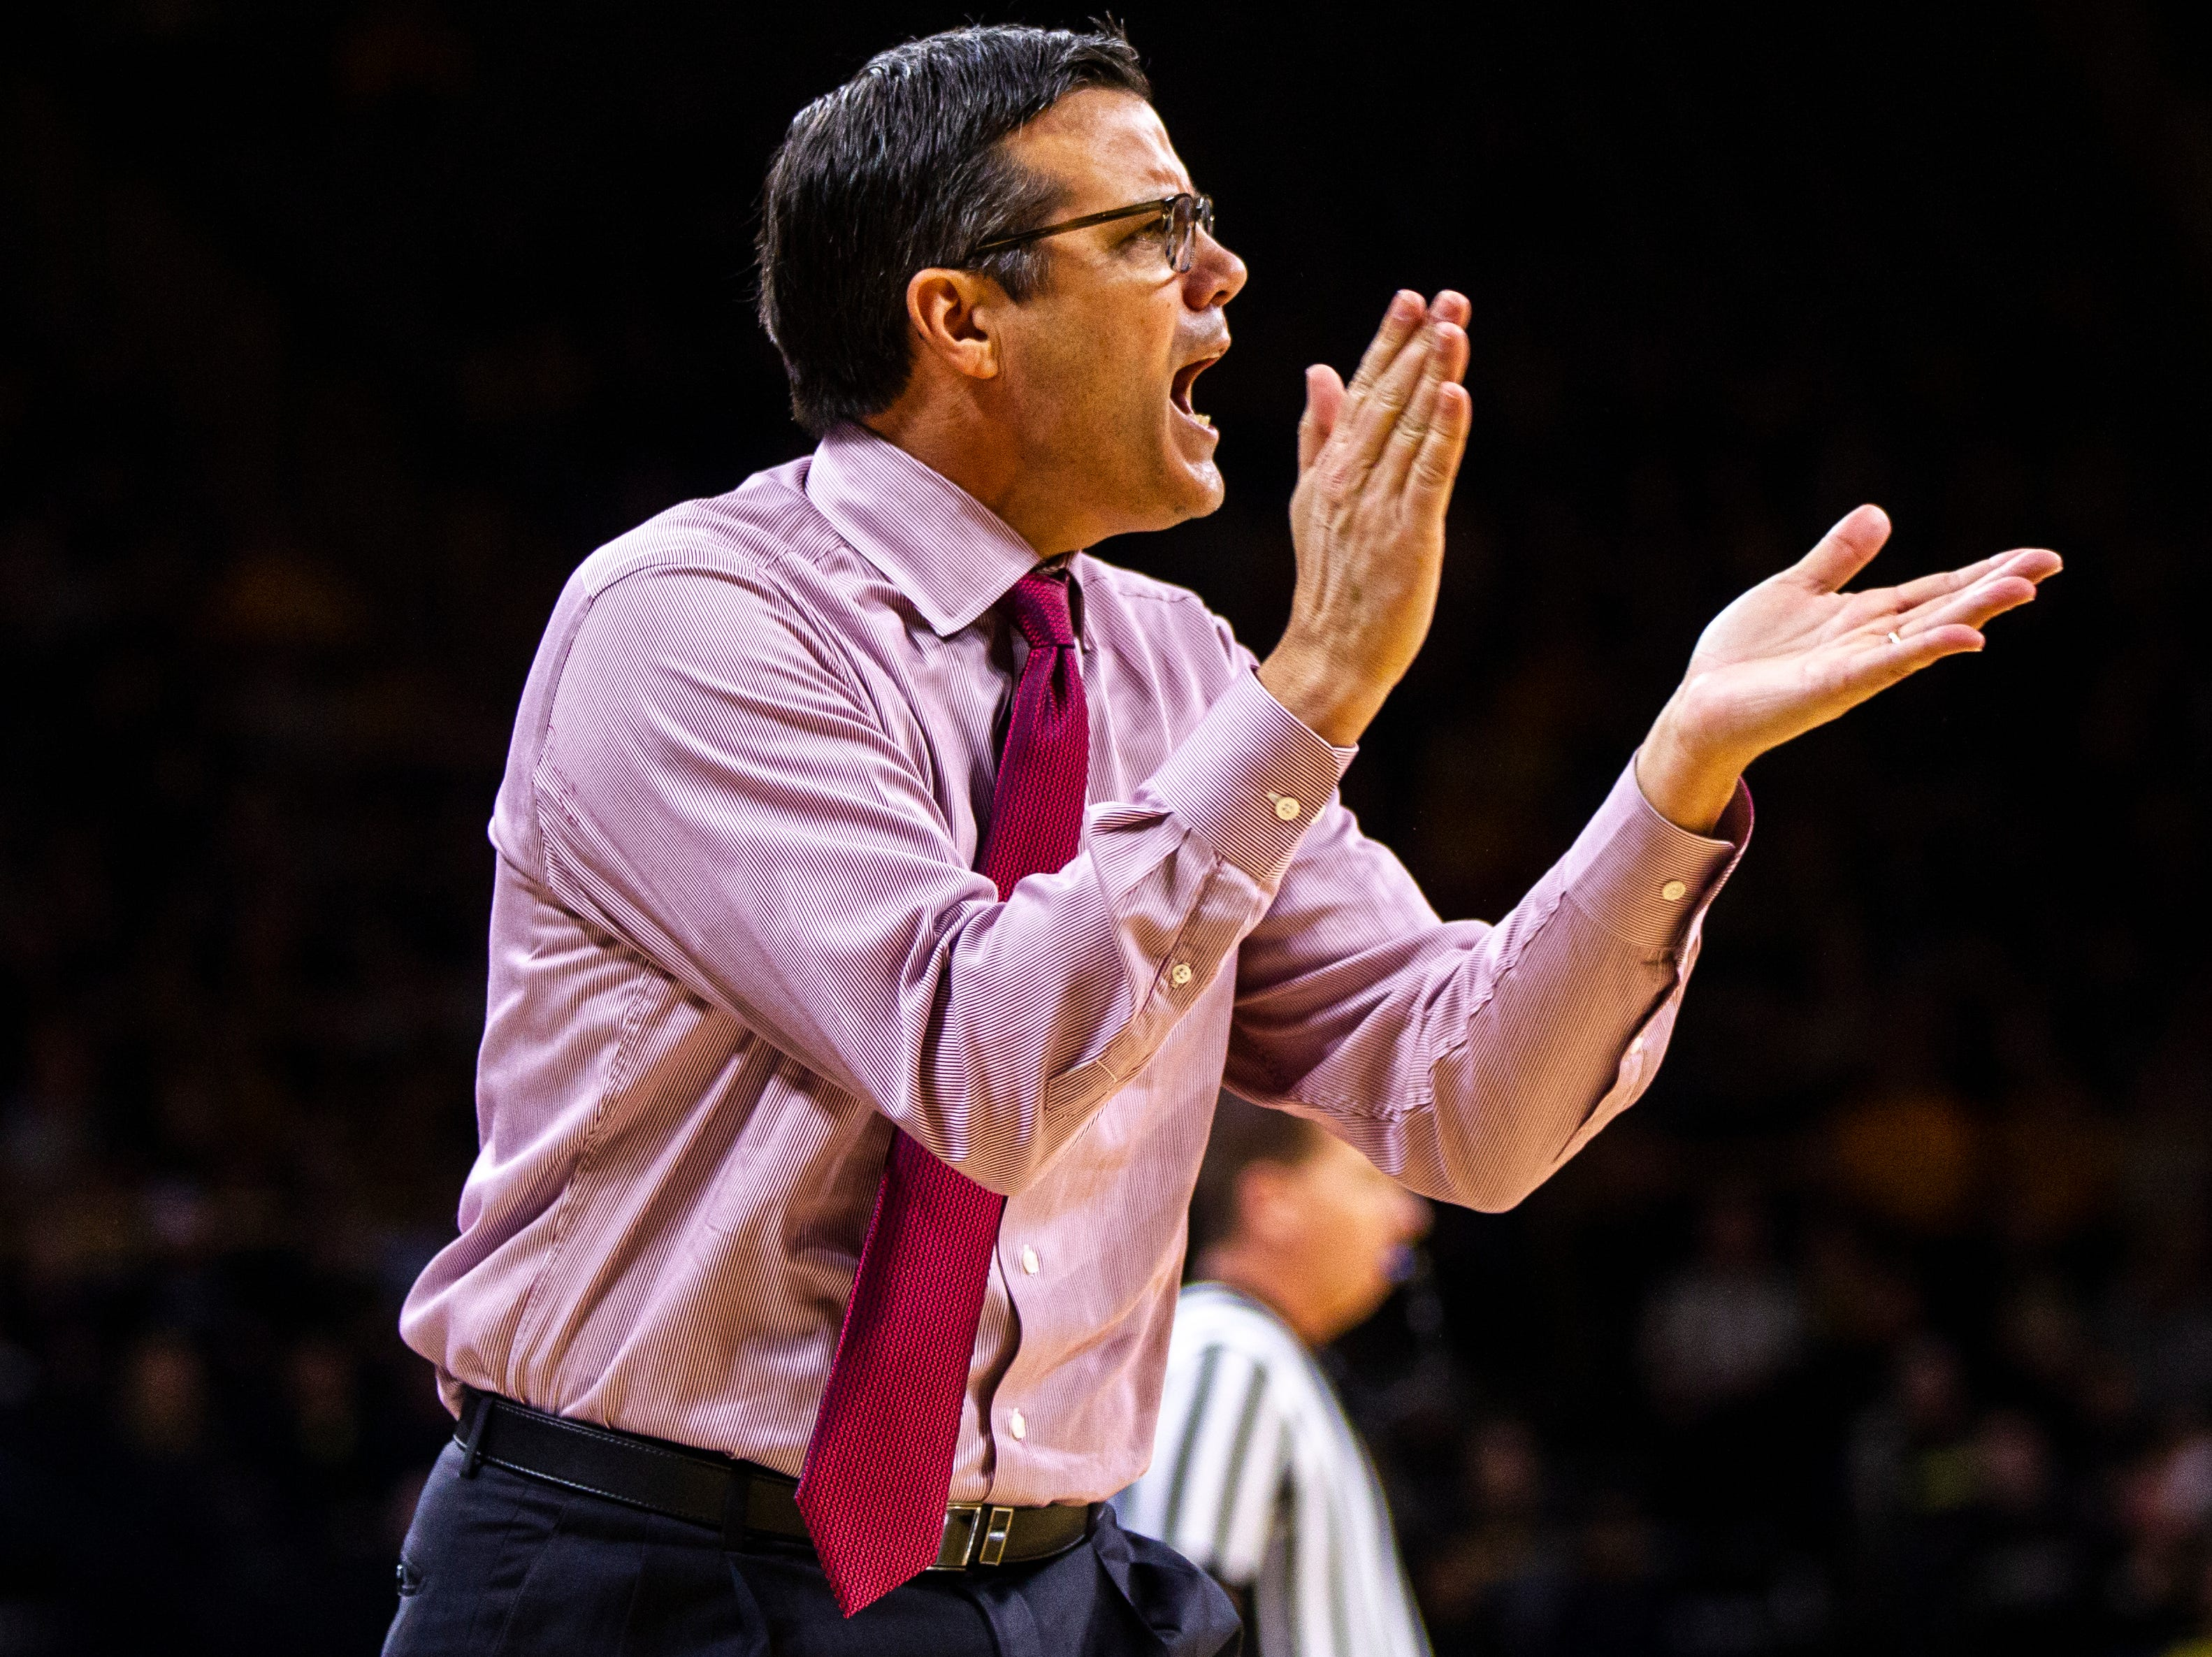 Nebraska head coach Tim Miles calls out to players during a NCAA Big Ten Conference men's basketball game on Sunday, Jan. 6, 2019, at the Carver-Hawkeye Arena in Iowa City, Iowa.